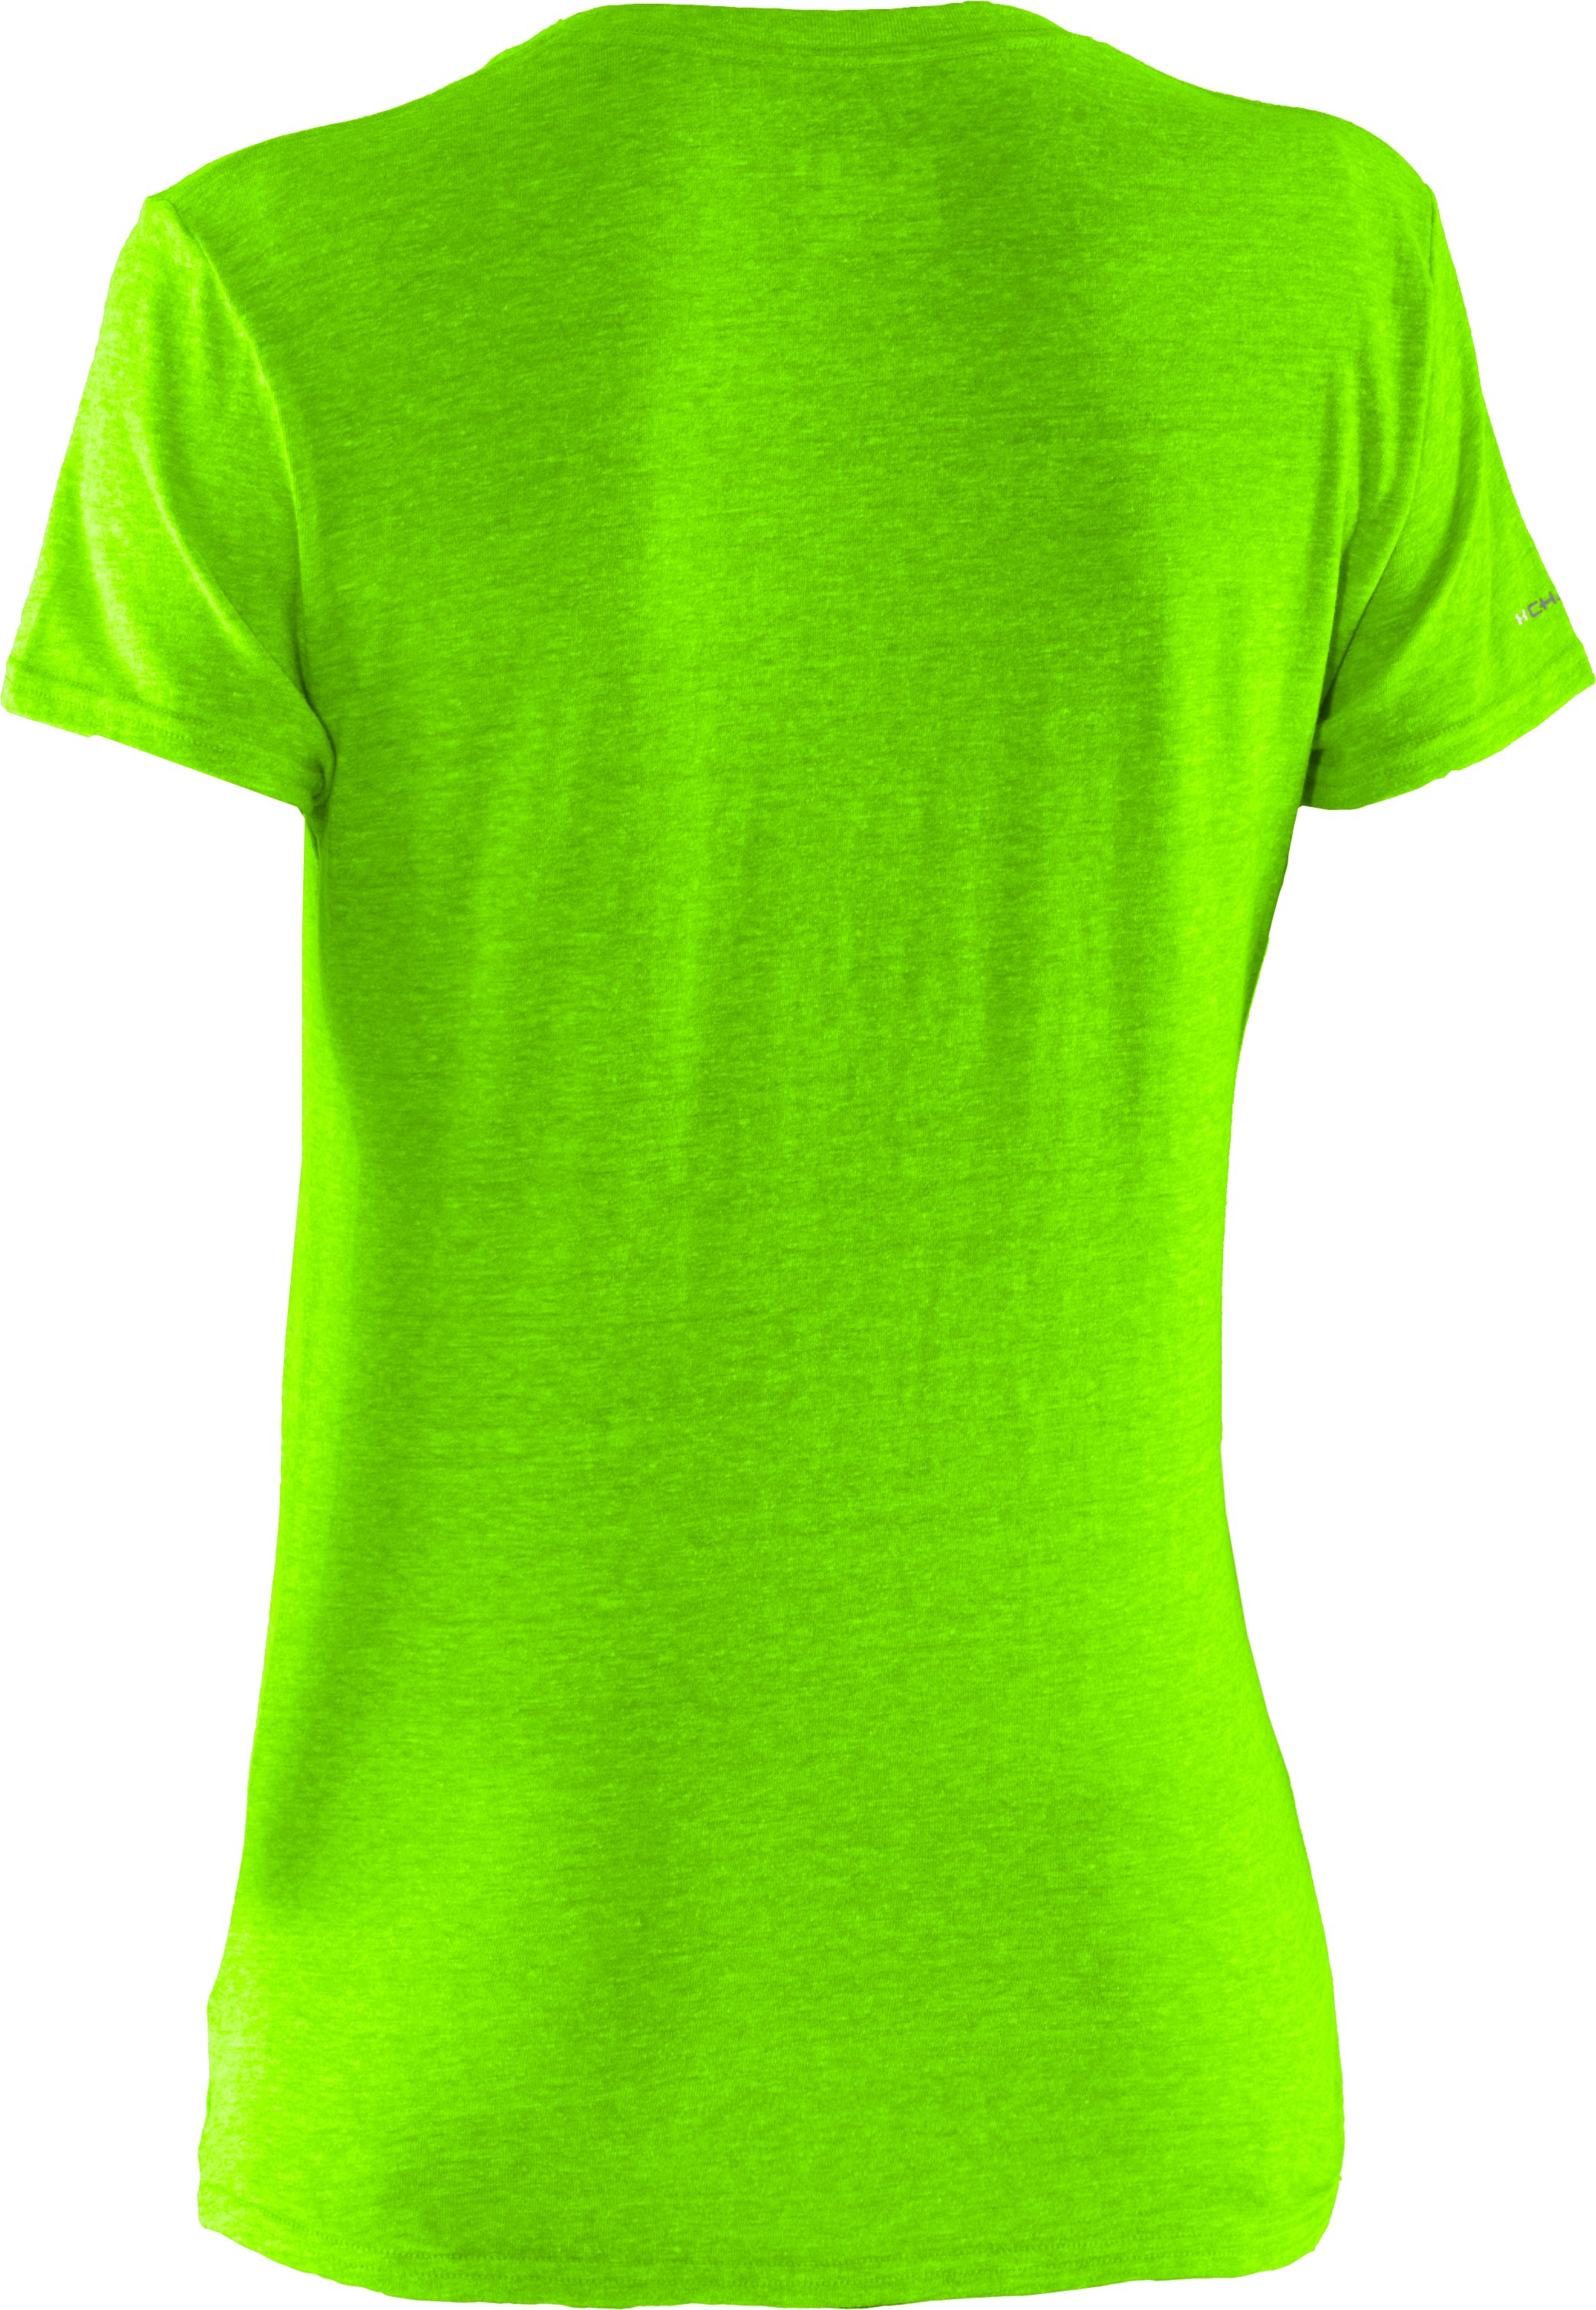 Women's Charged Cotton® Undeniable T-Shirt, HYPER GREEN